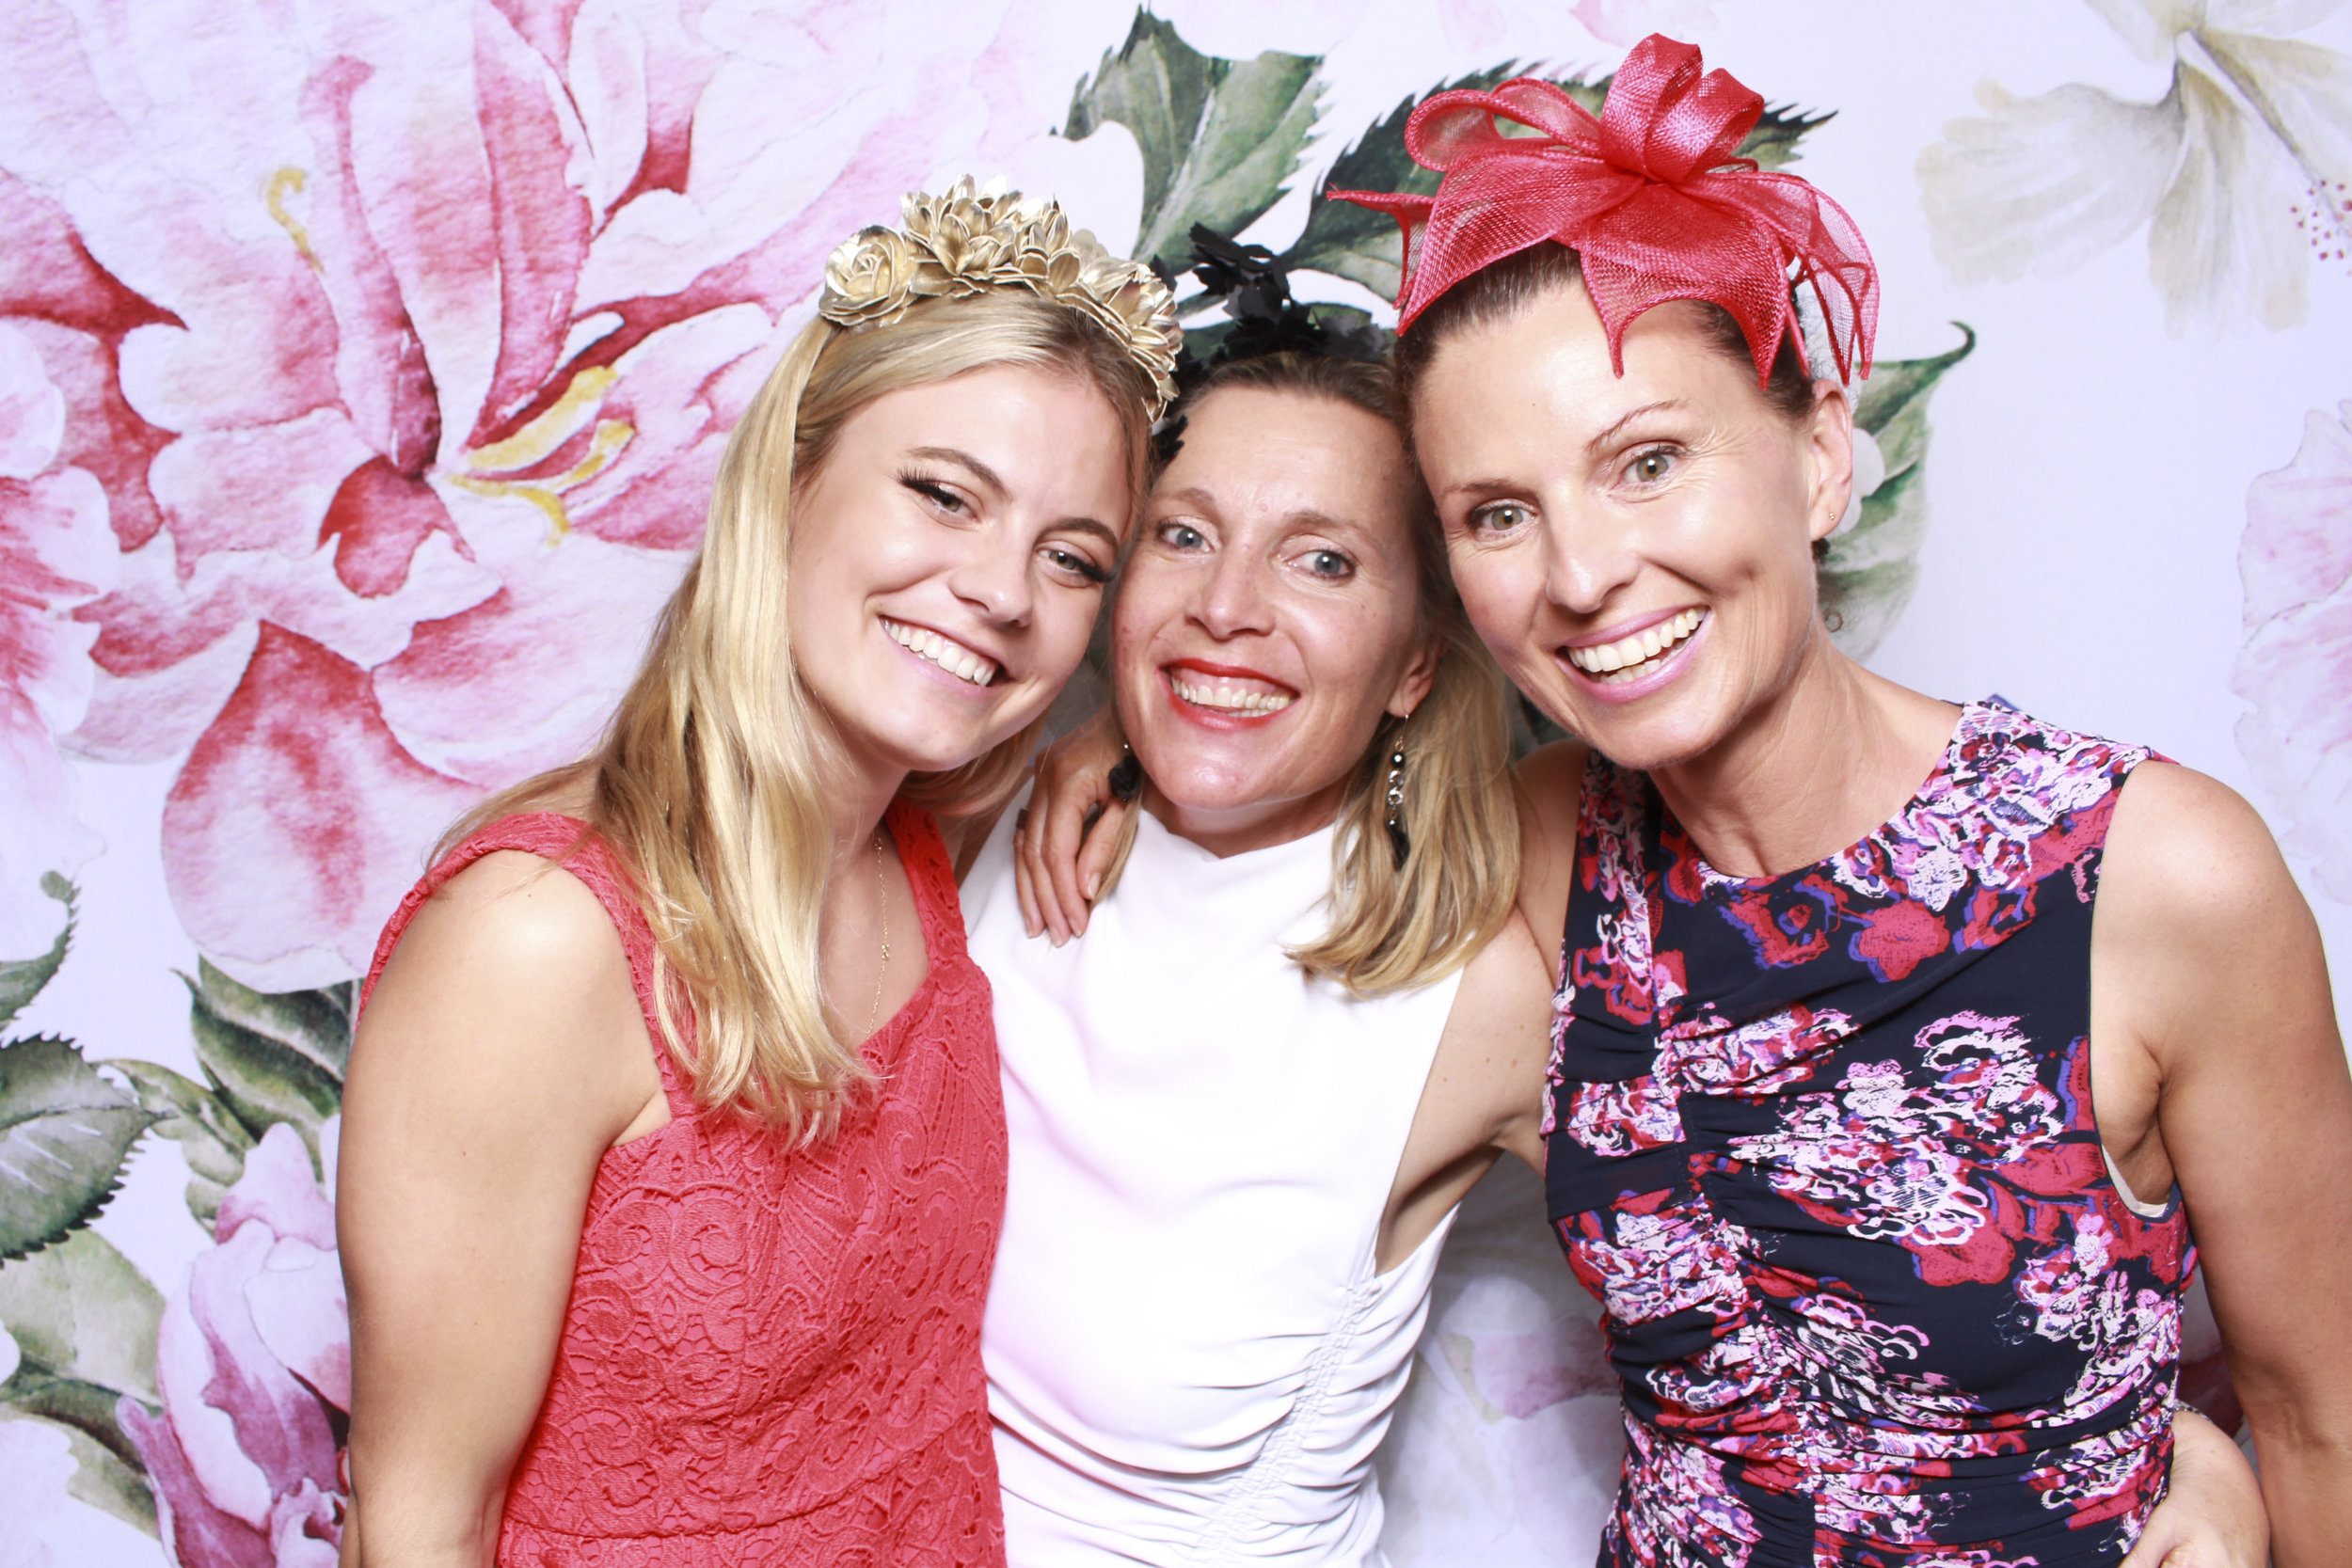 photo booth hire sydney backdrop floral1.jpg